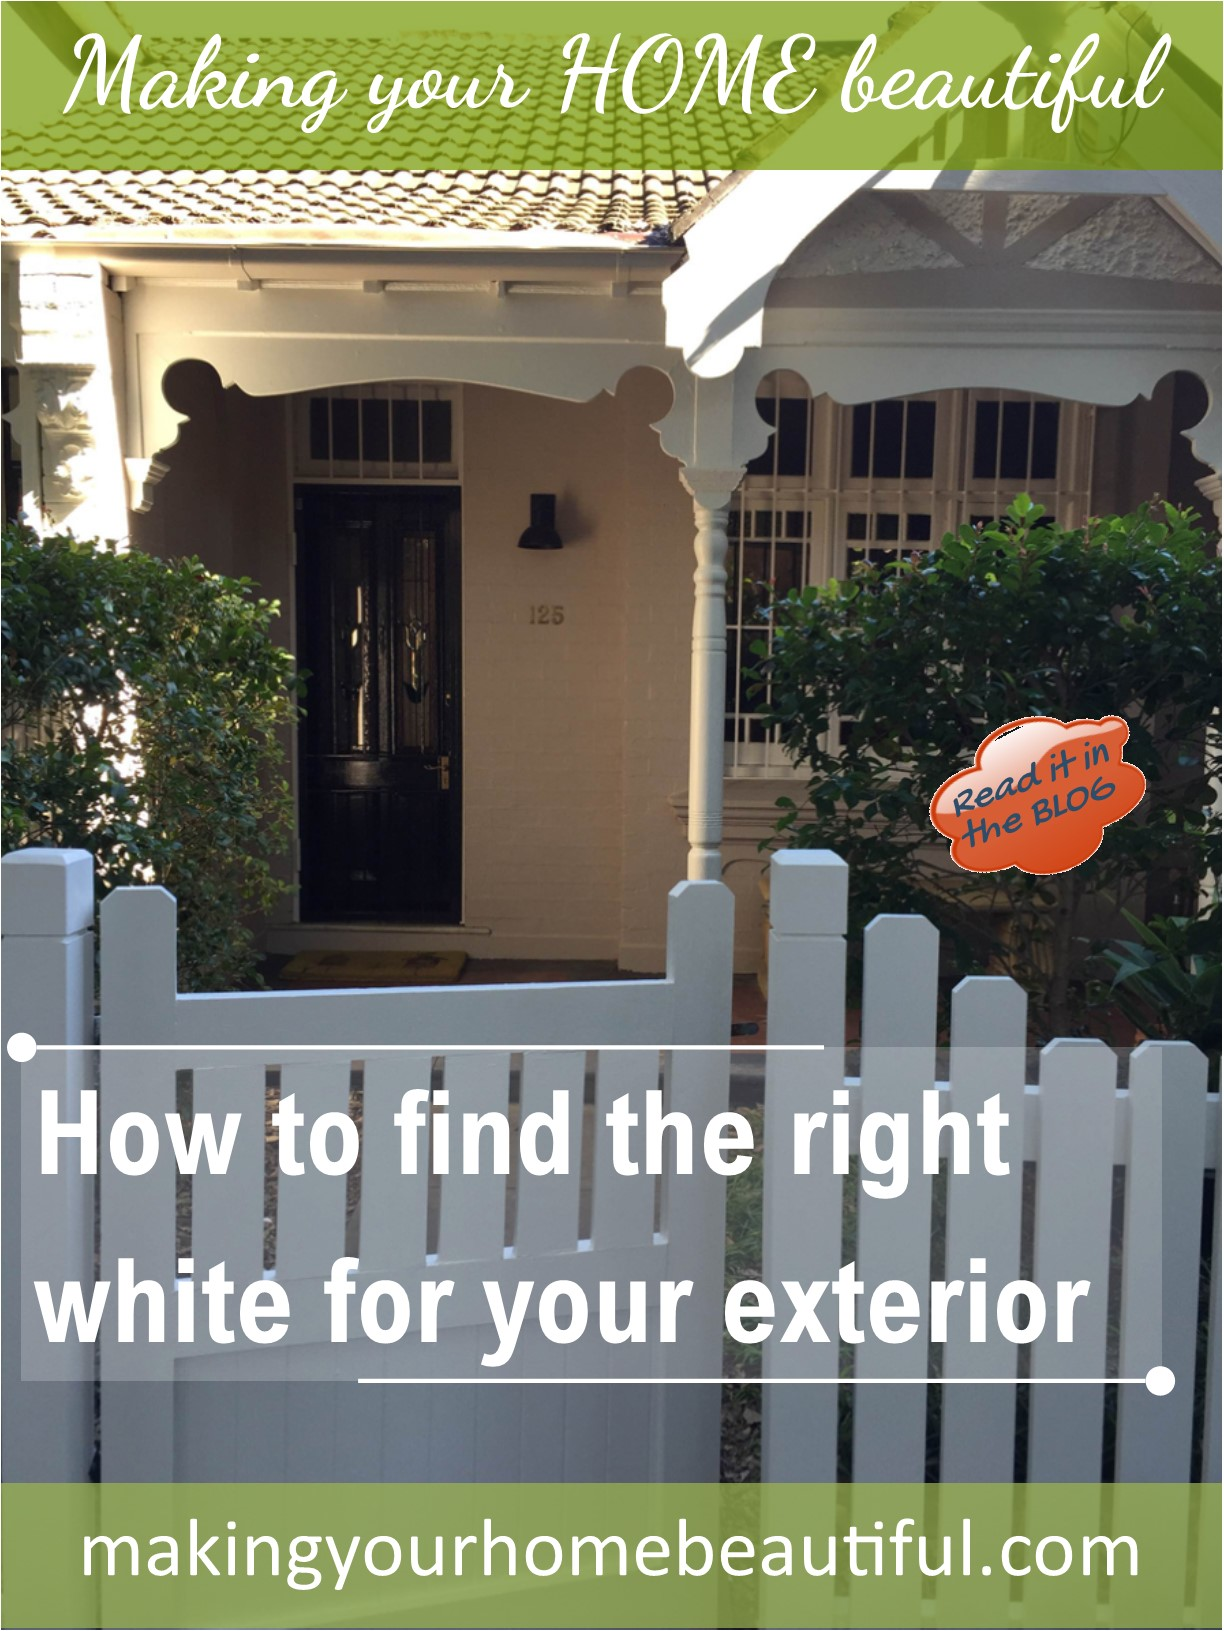 How to find the right white for your exterior